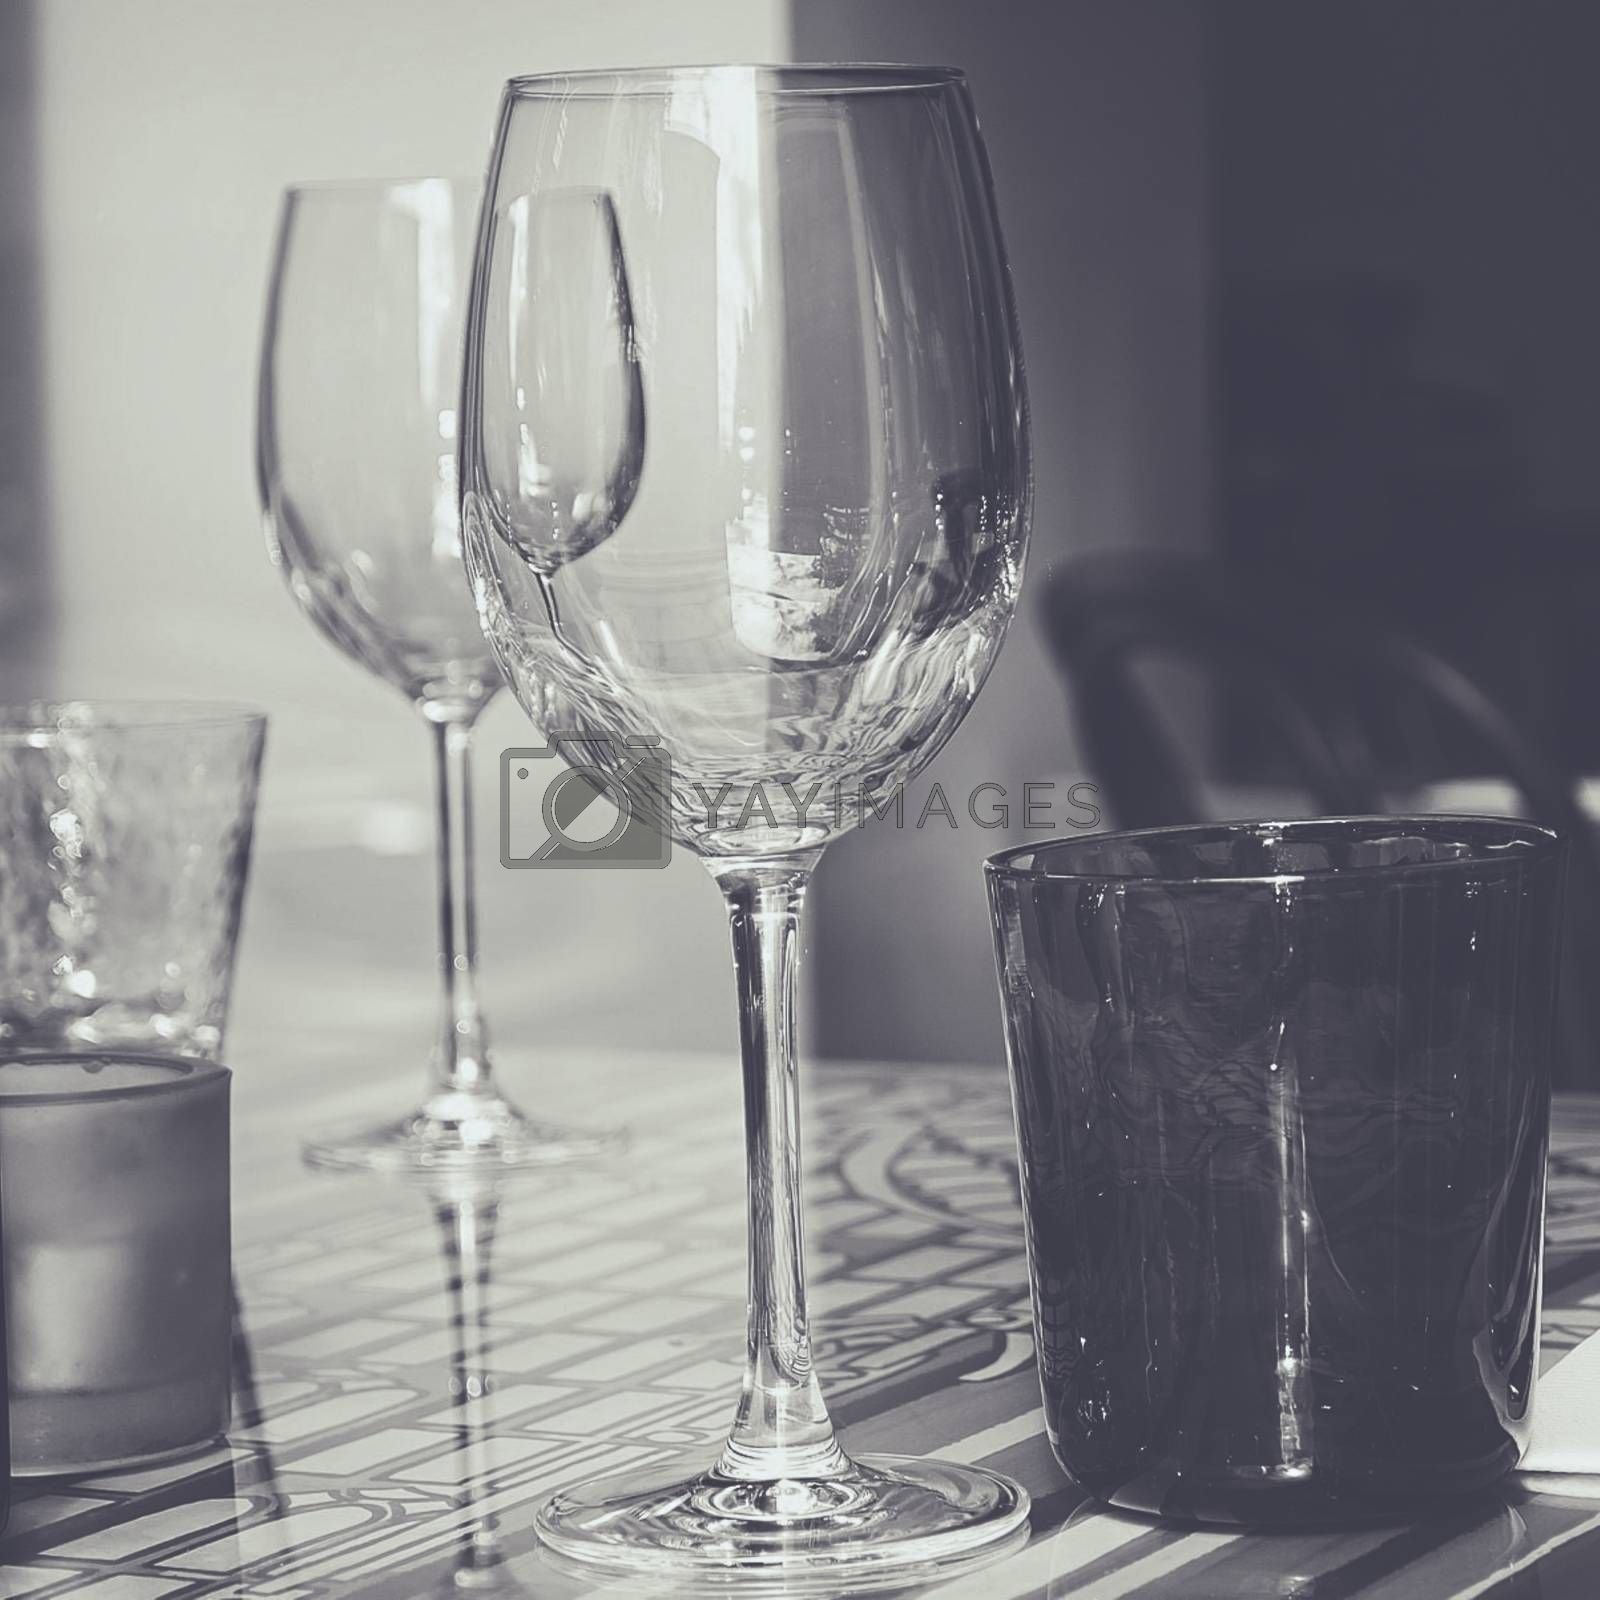 Royalty free image of Crystal glasses on decorated glass table by balage941